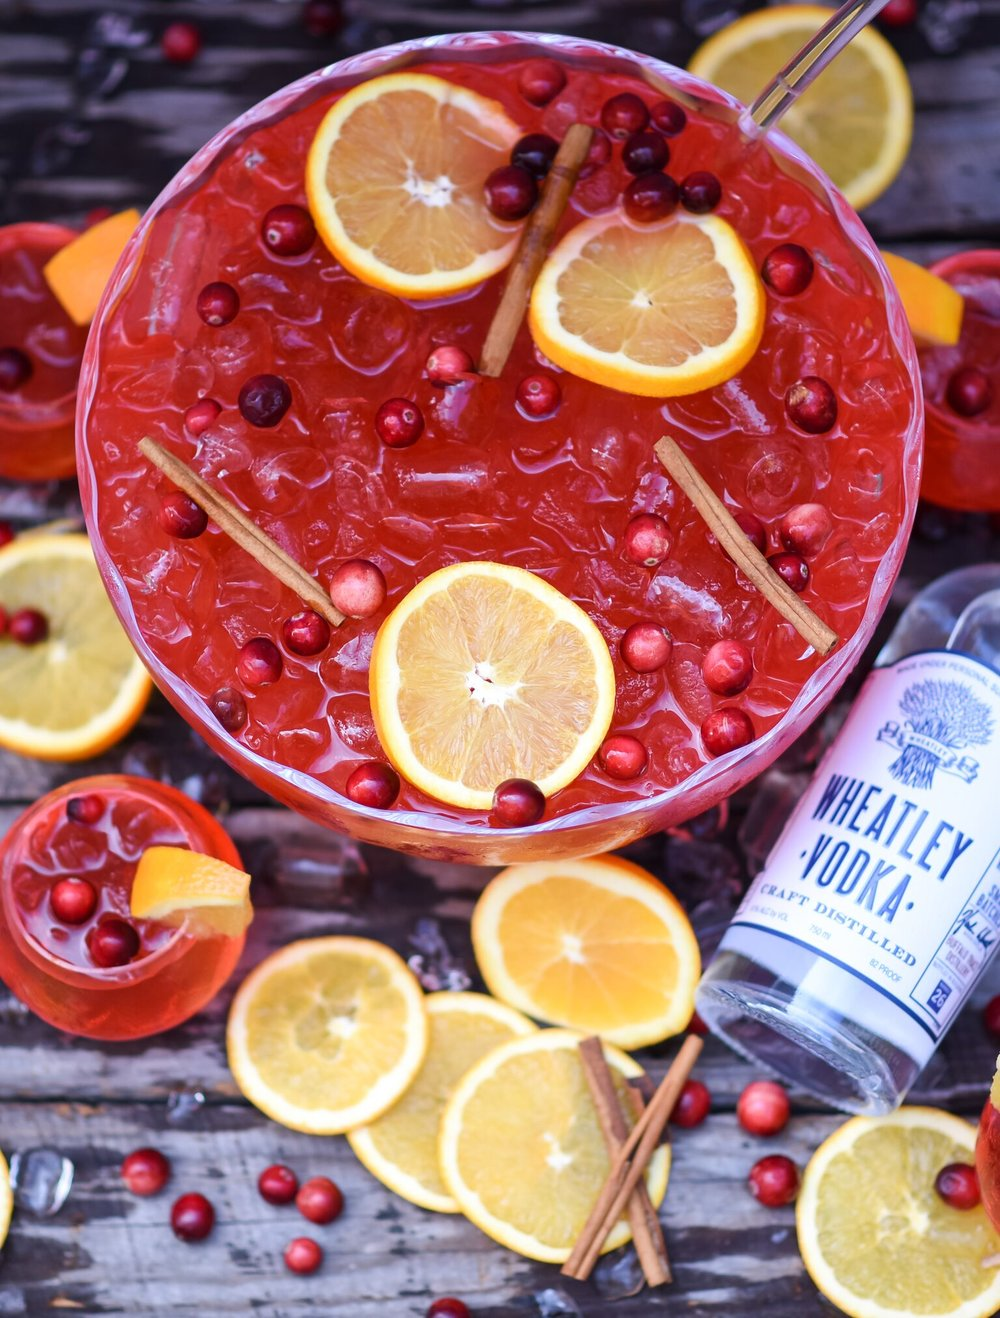 Overhead shot of a bowl of punch with orange slices, cranberries, cinnamon sticks and a bottle of Wheatley Vodka.